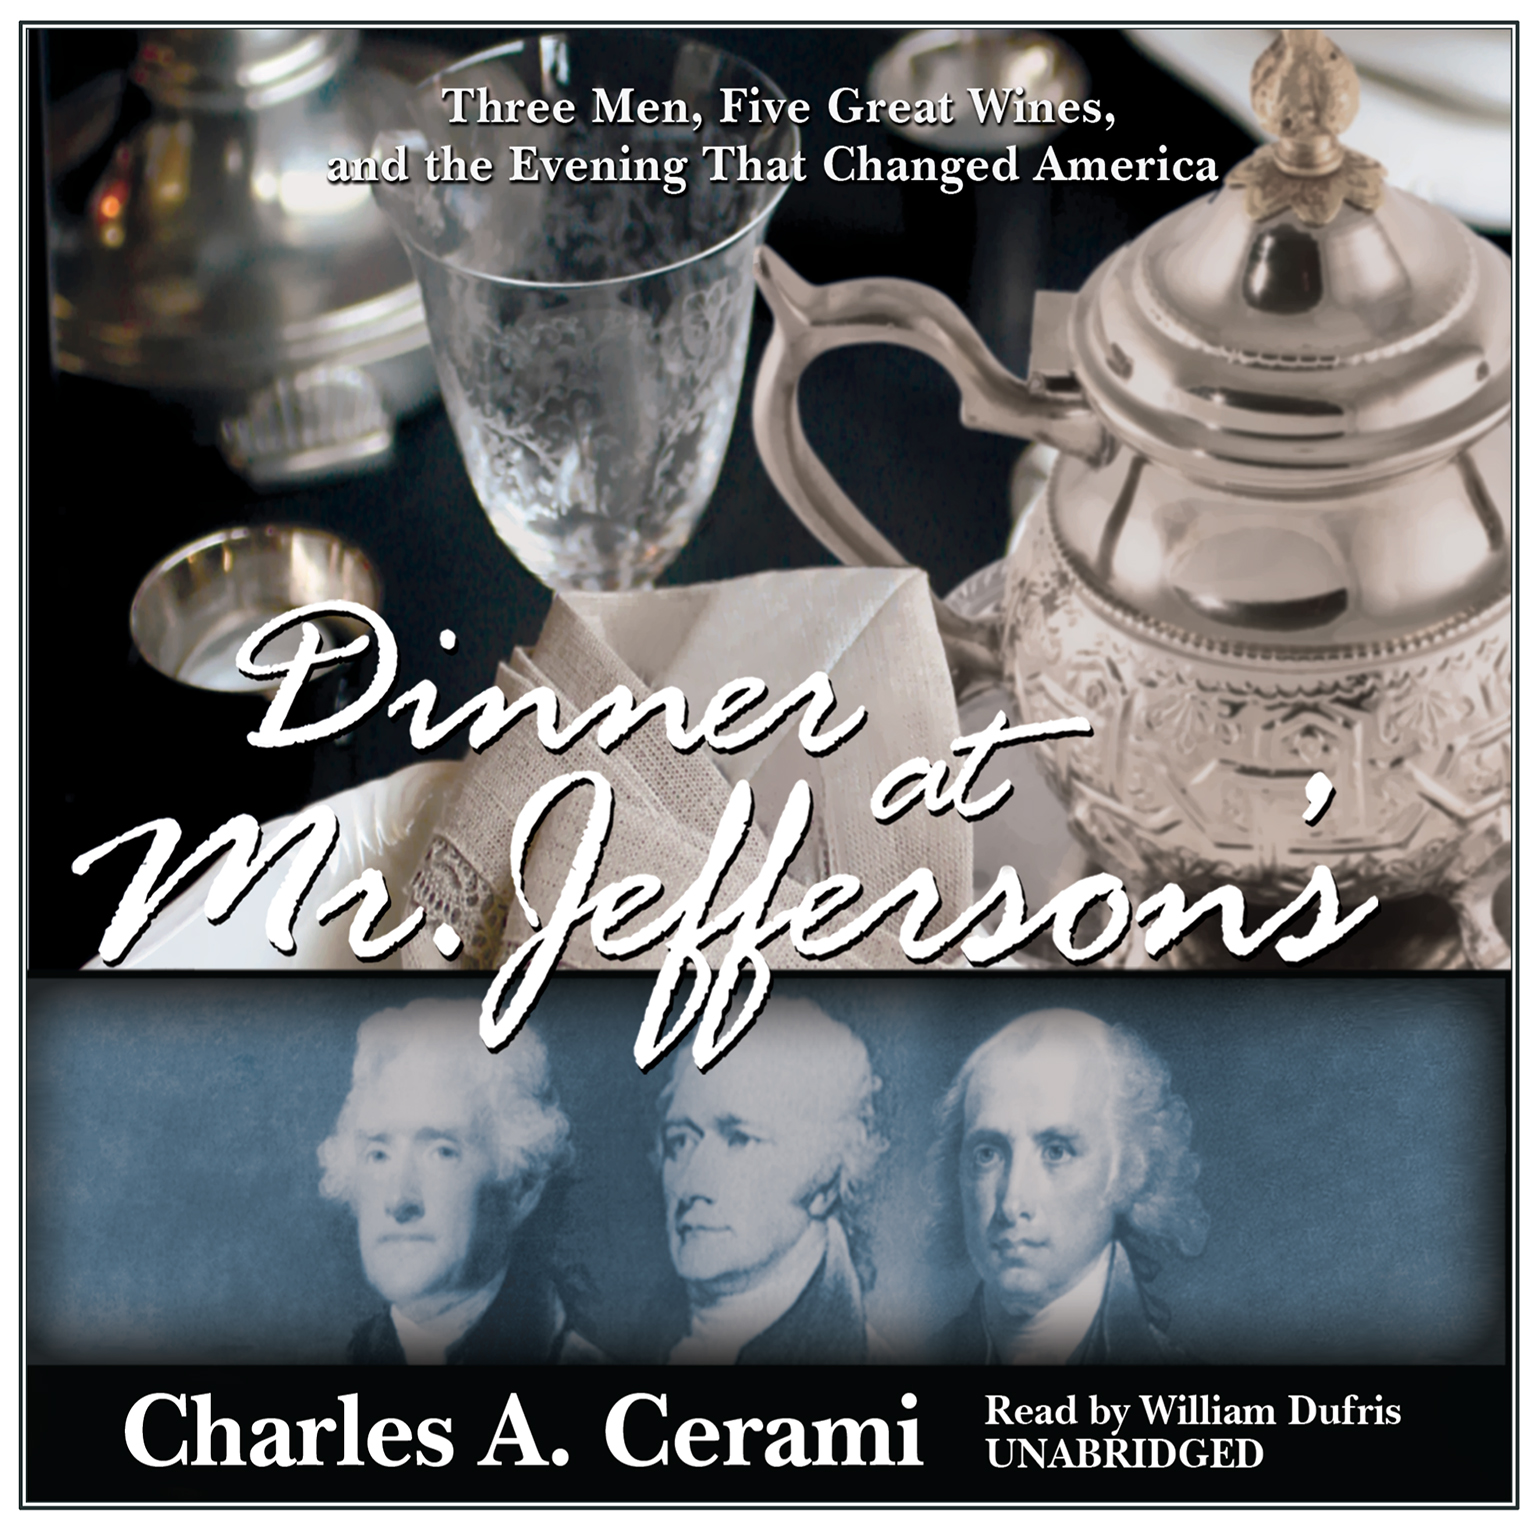 an analysis of jeffersons great gamble by charles a cerami